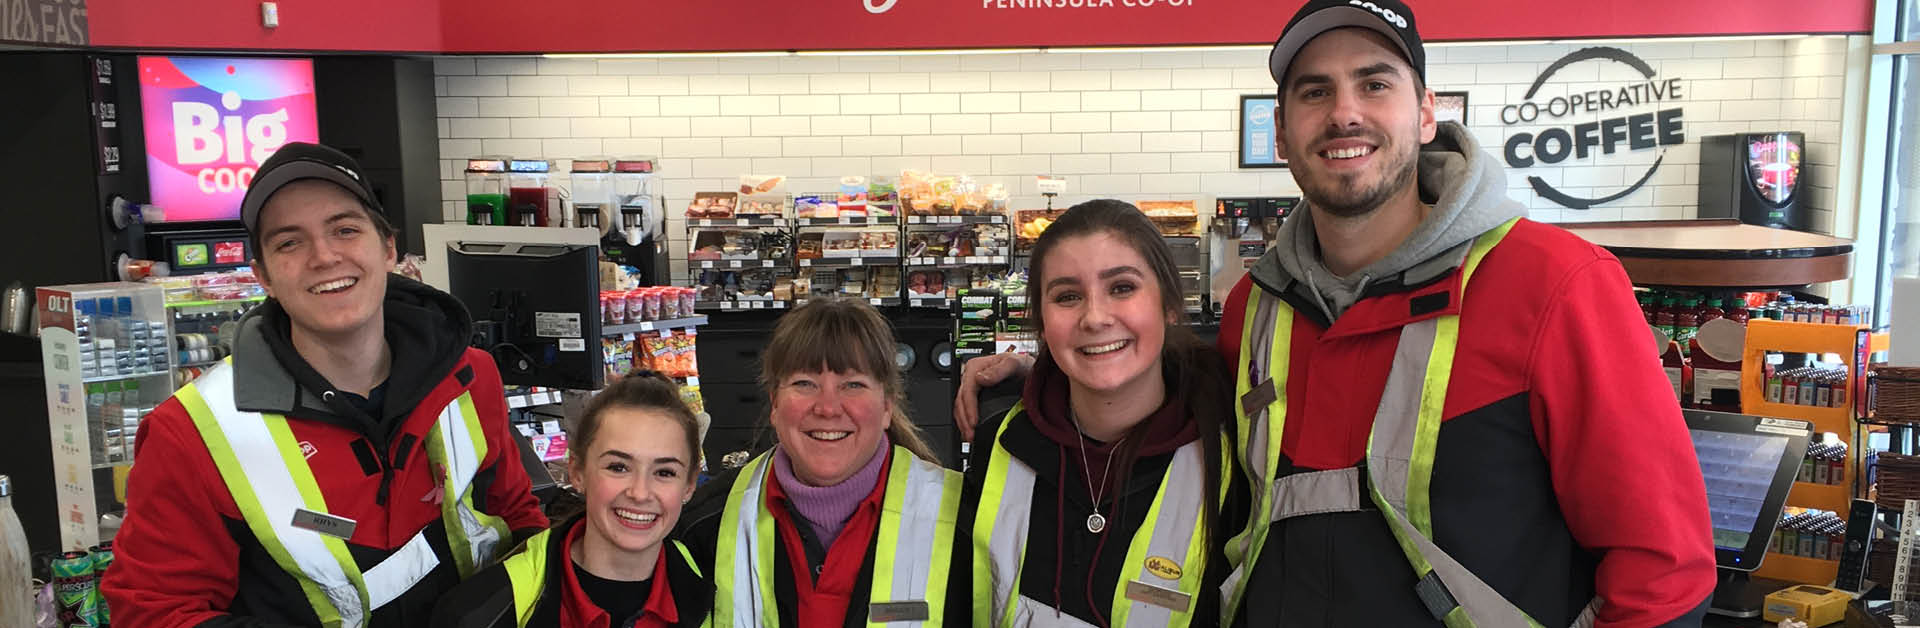 Find Employment Opportunities at Peninsula Co-op | Apply Now